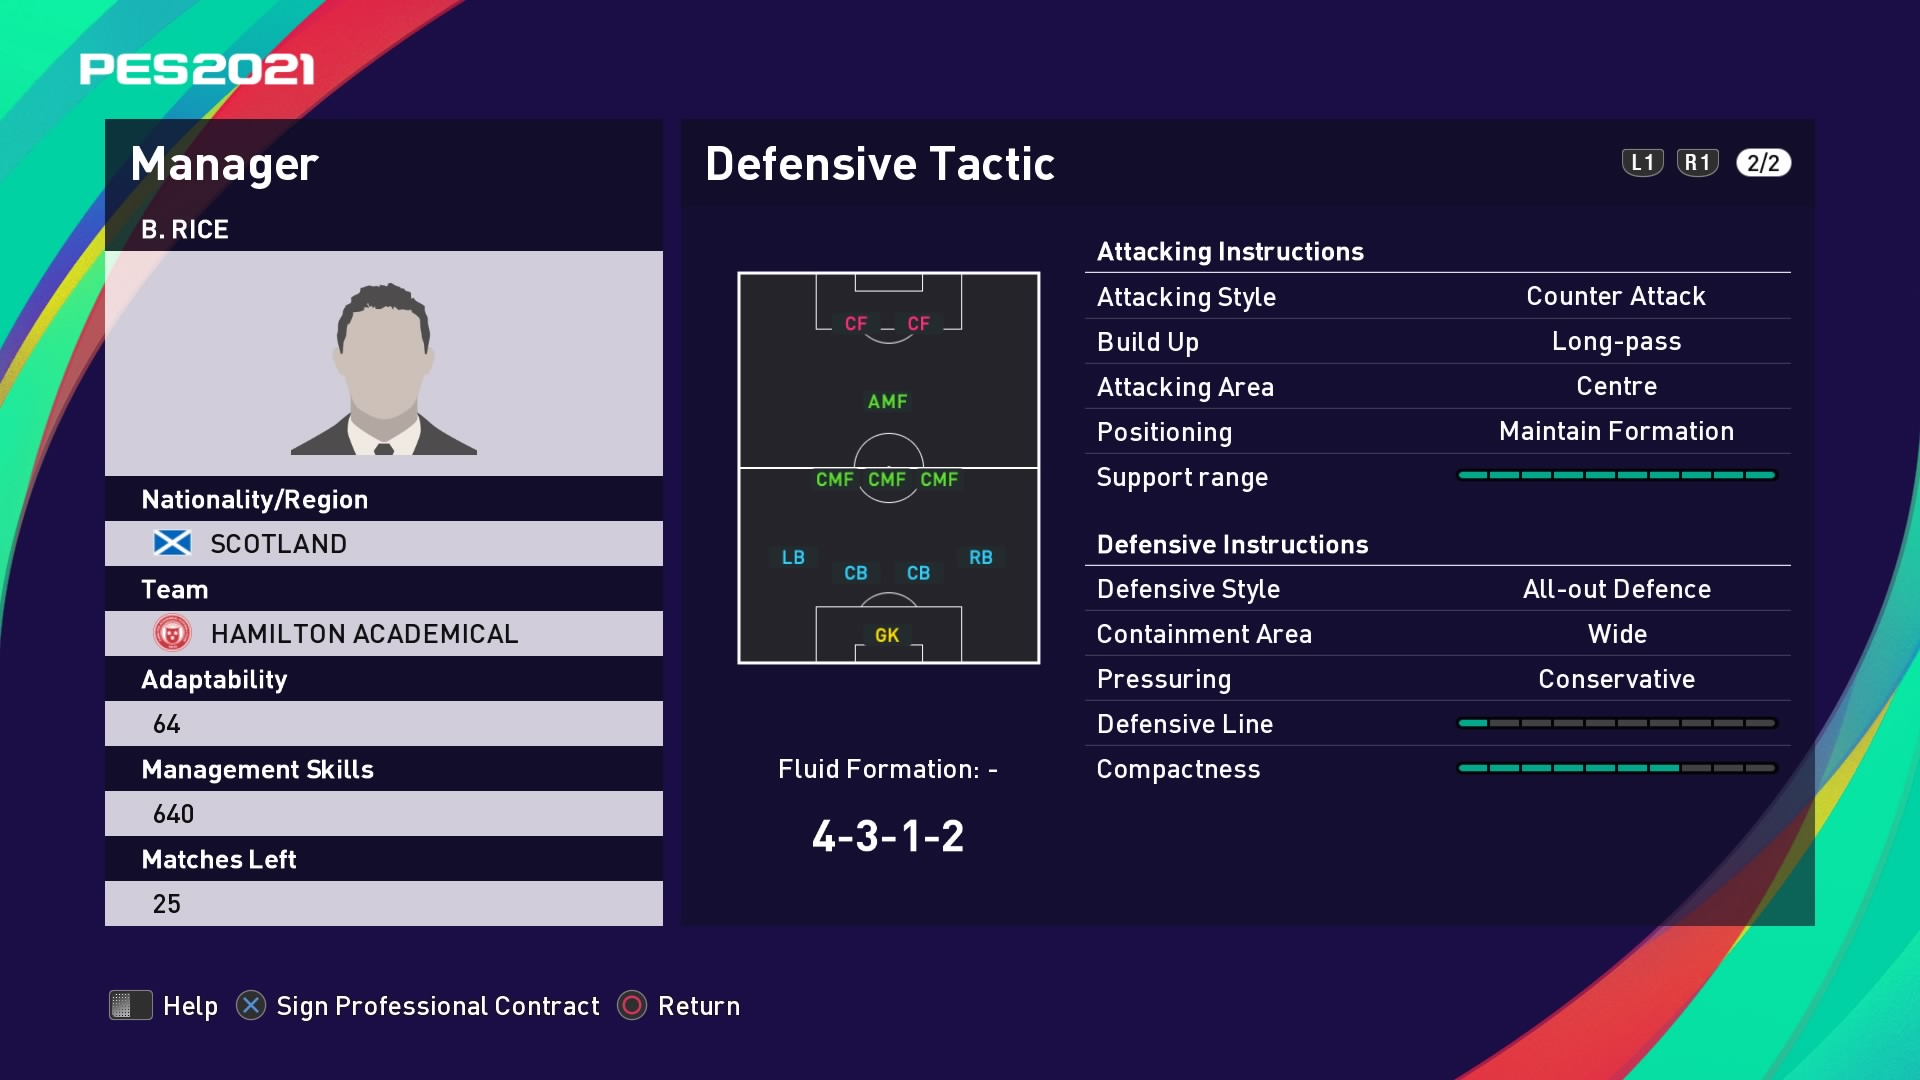 B. Rice (Brian Rice) Defensive Tactic in PES 2021 myClub